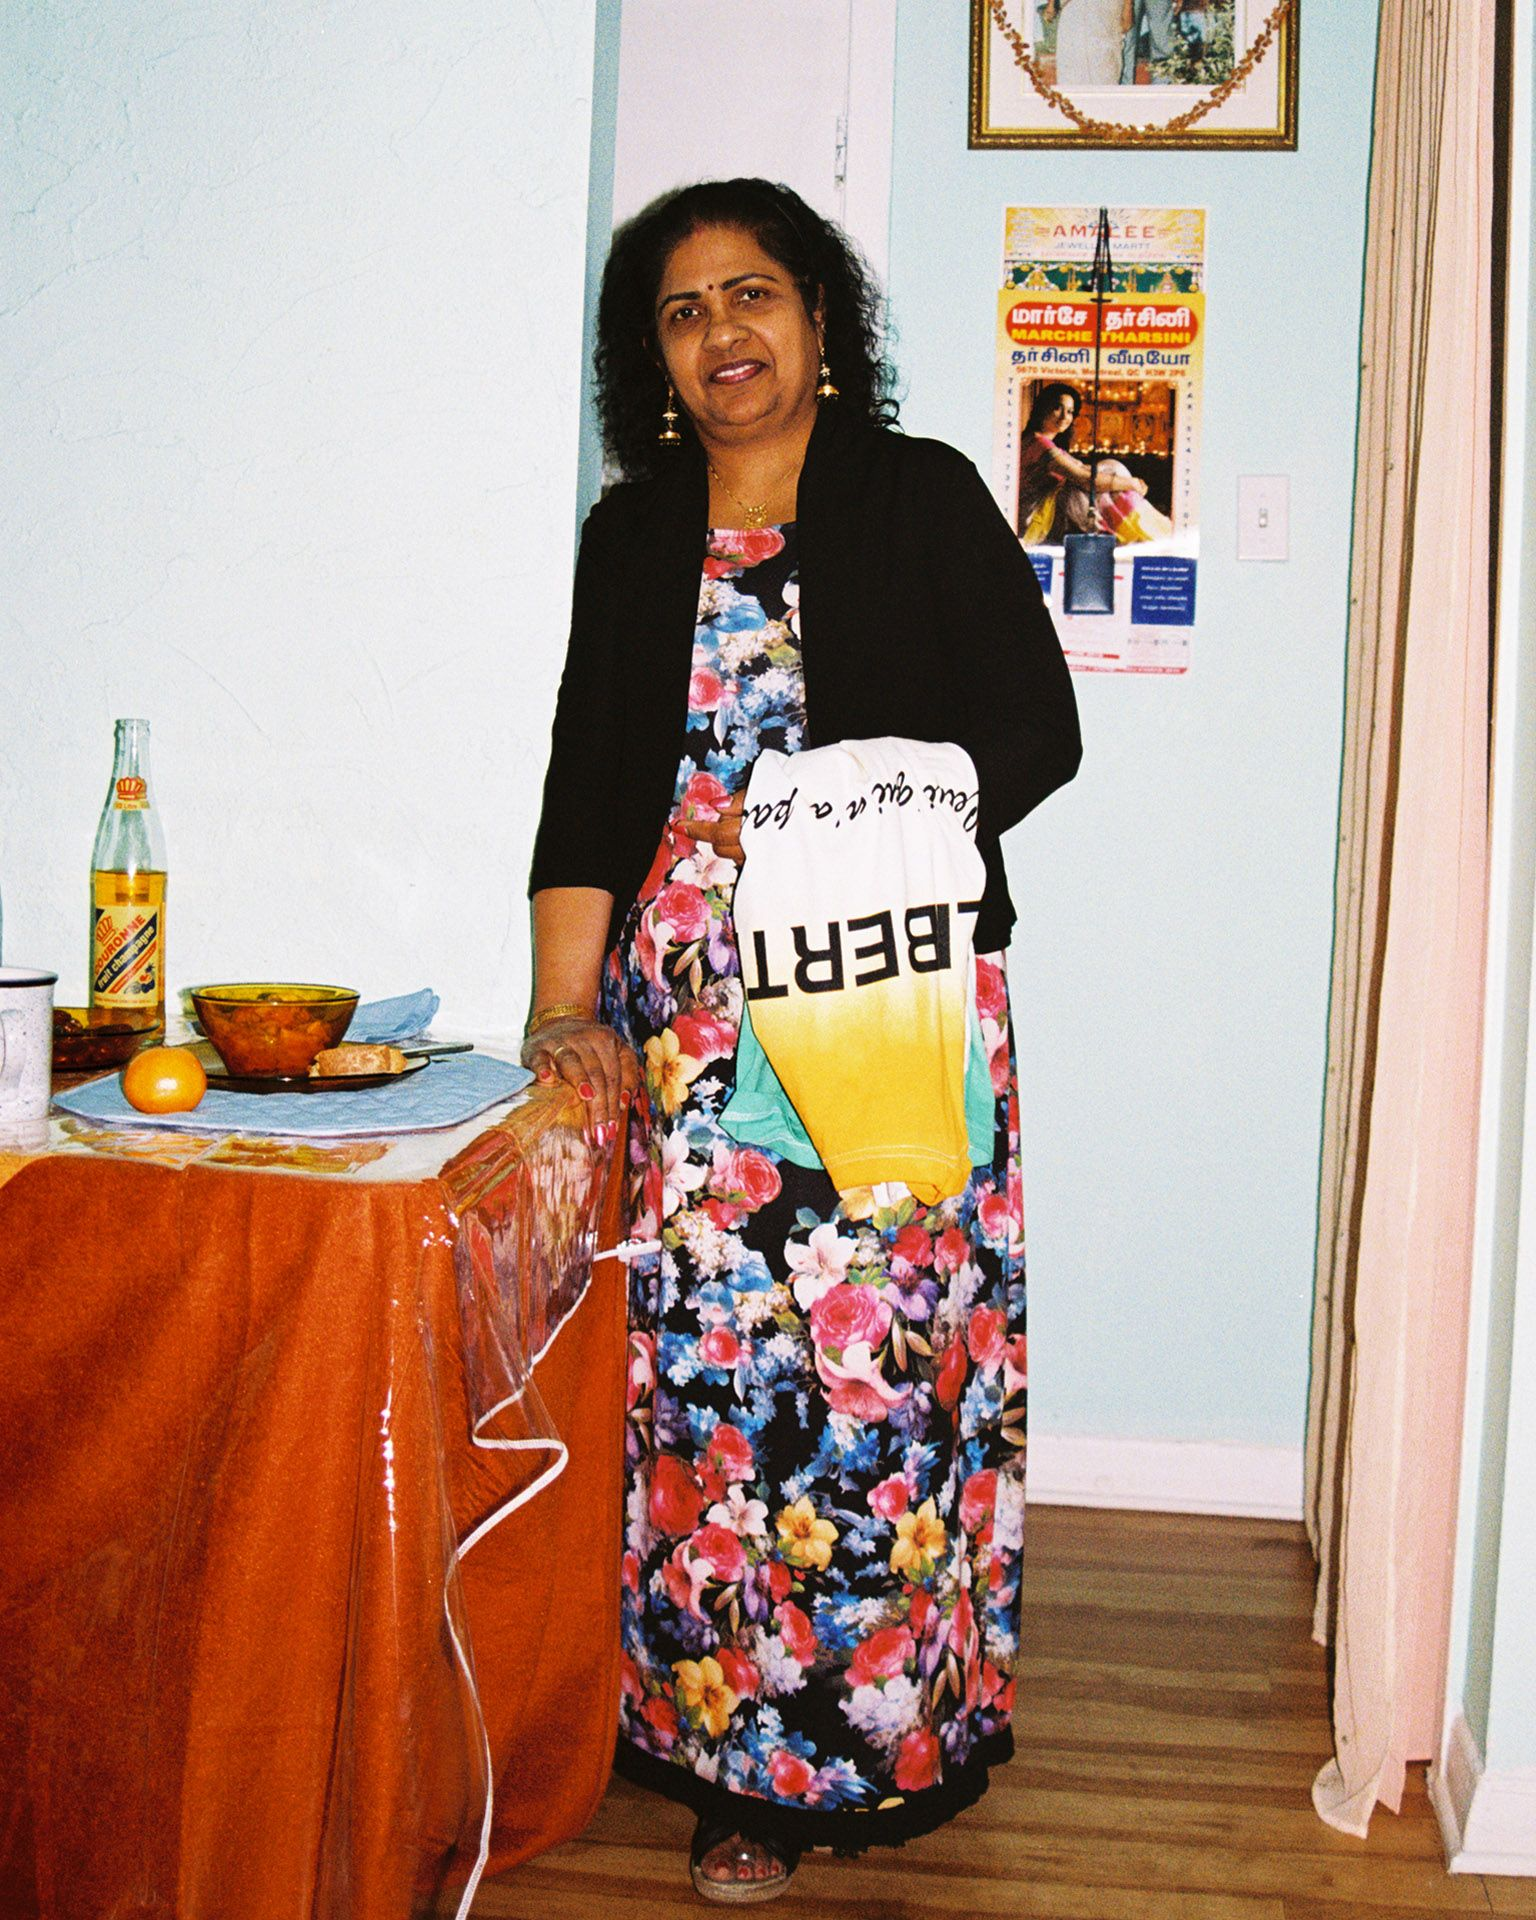 indian middle aged woman by Oumayma B Tanfous for Moonshine international sapologie with Nataal